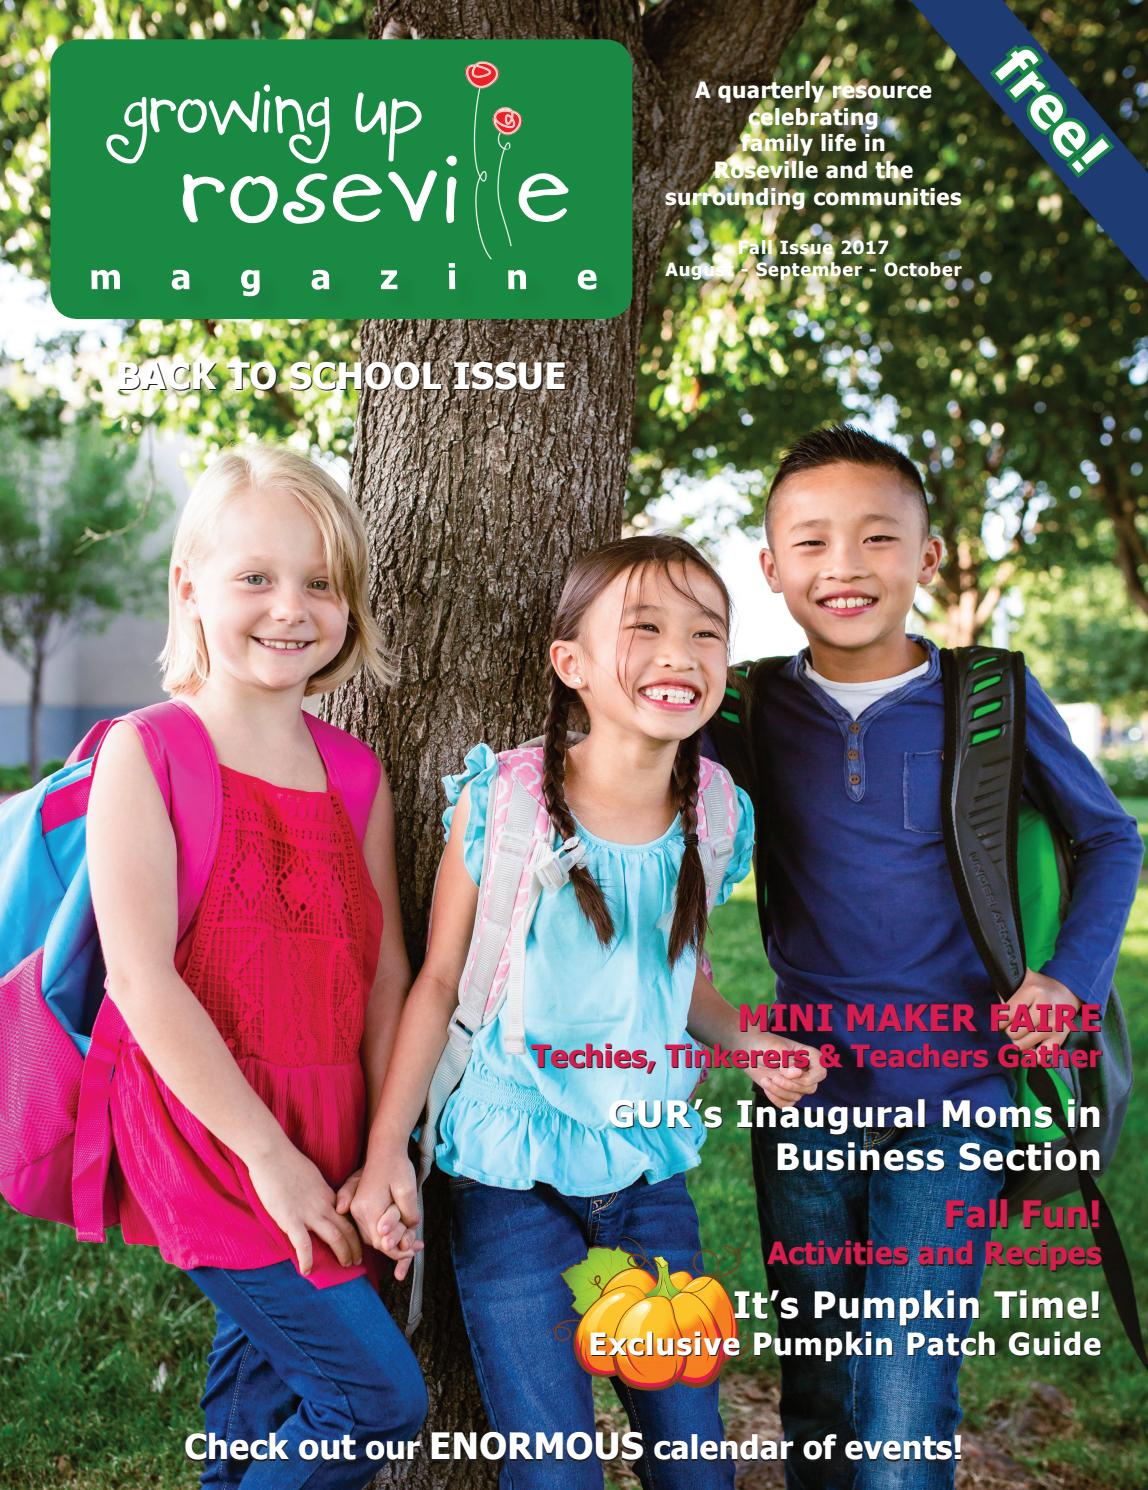 Fountains Roseville Events 2020.Growing Up Roseville Fall 2017 By Growing Up Roseville Issuu